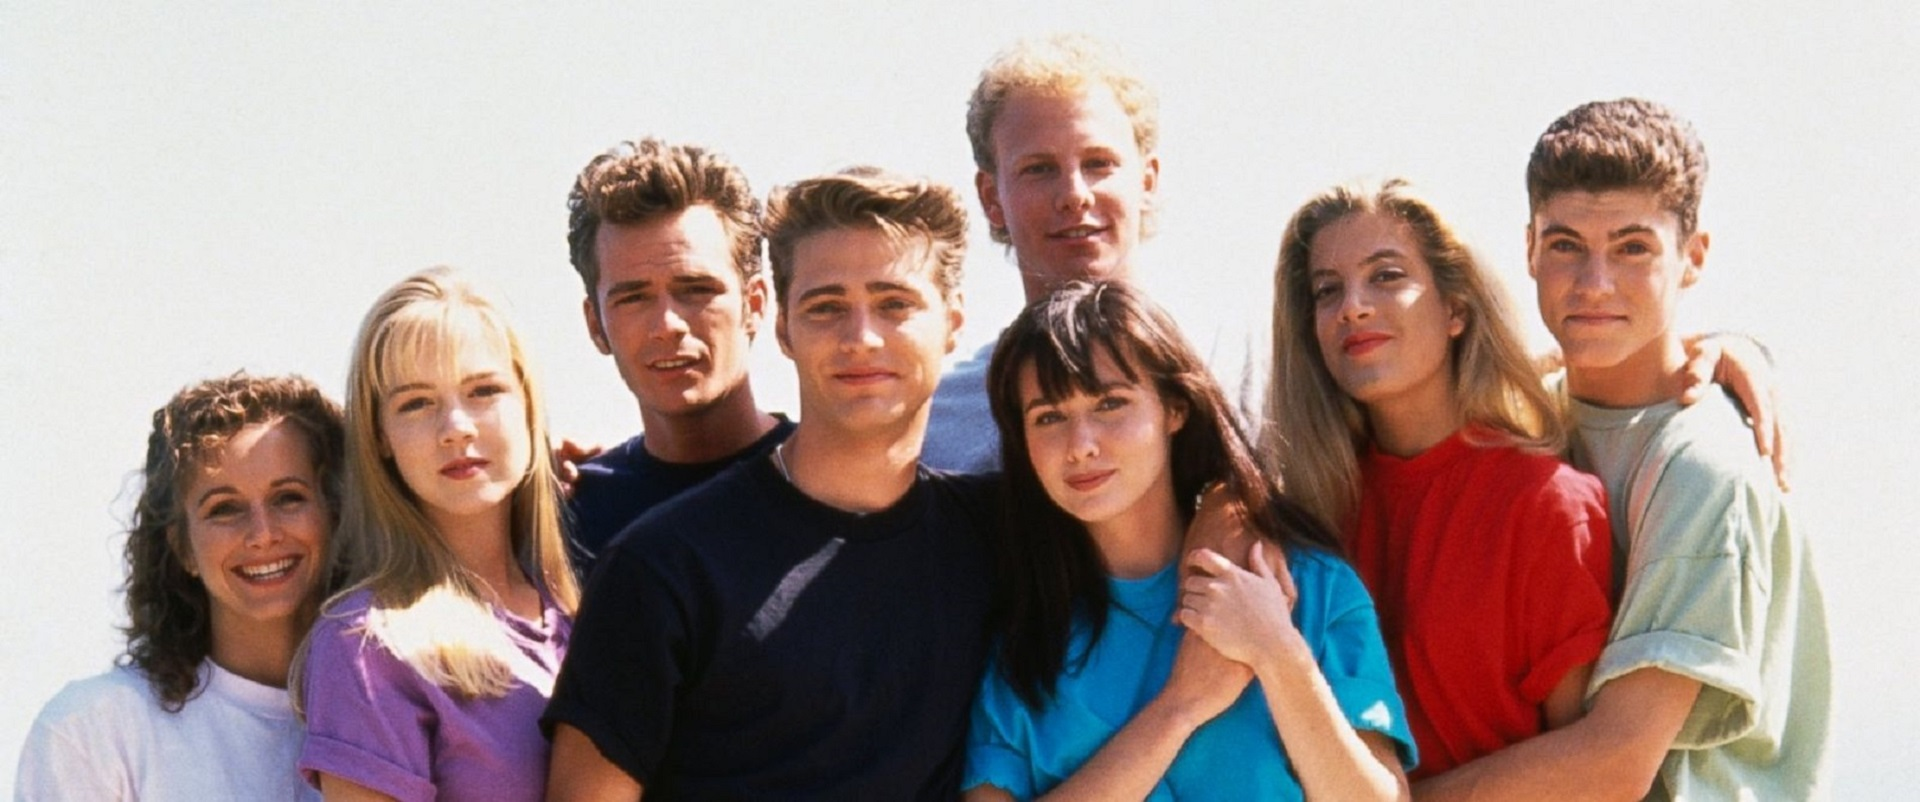 Die Highschool-Kids aus Beverly Hills, 90210; Copyright: Fox Network